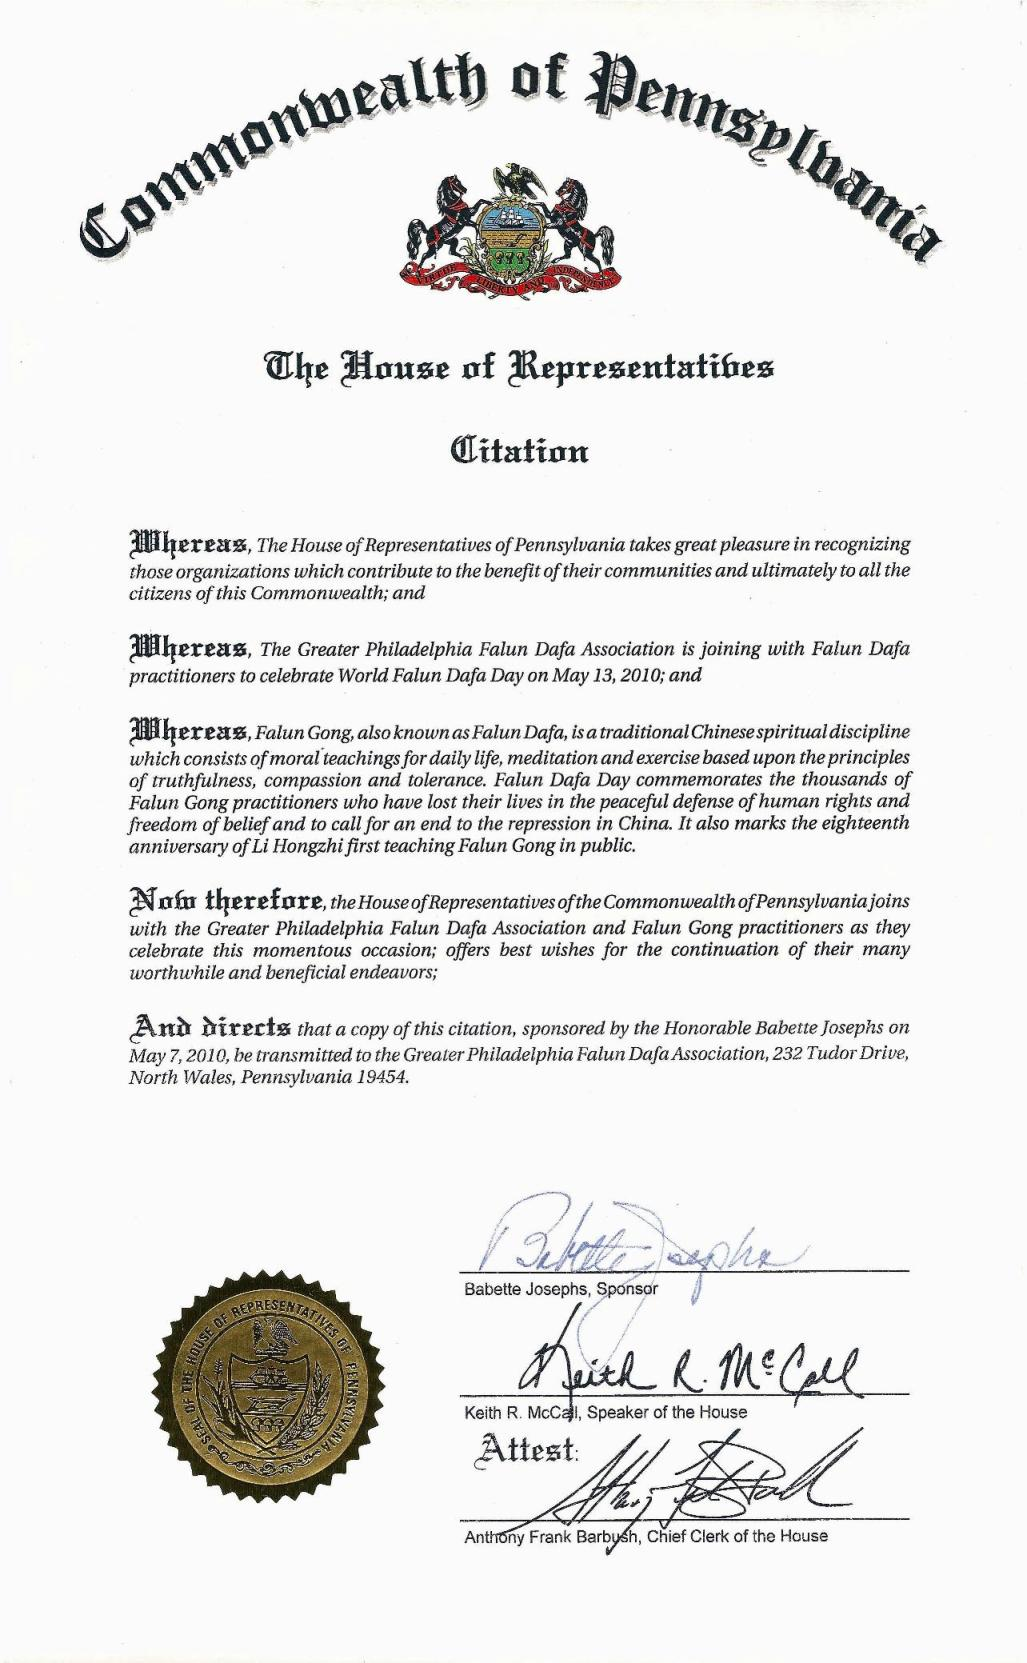 pennsylvania  house of representatives issues citation in